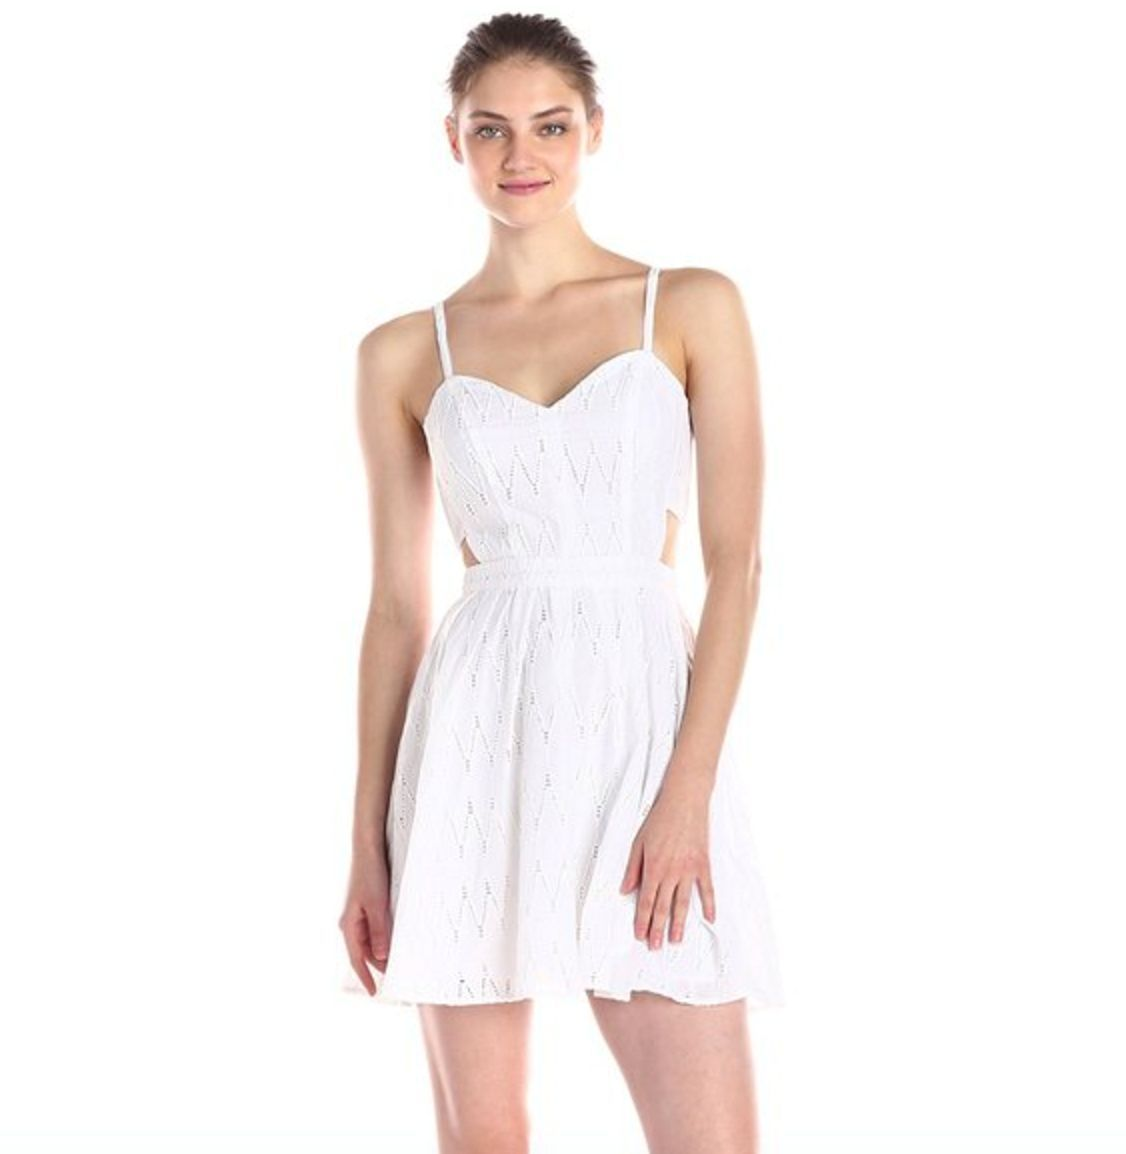 Sam Edelman White Eyelet Dress Womens sz 4 Fit & Flare Side Cutouts Summer small